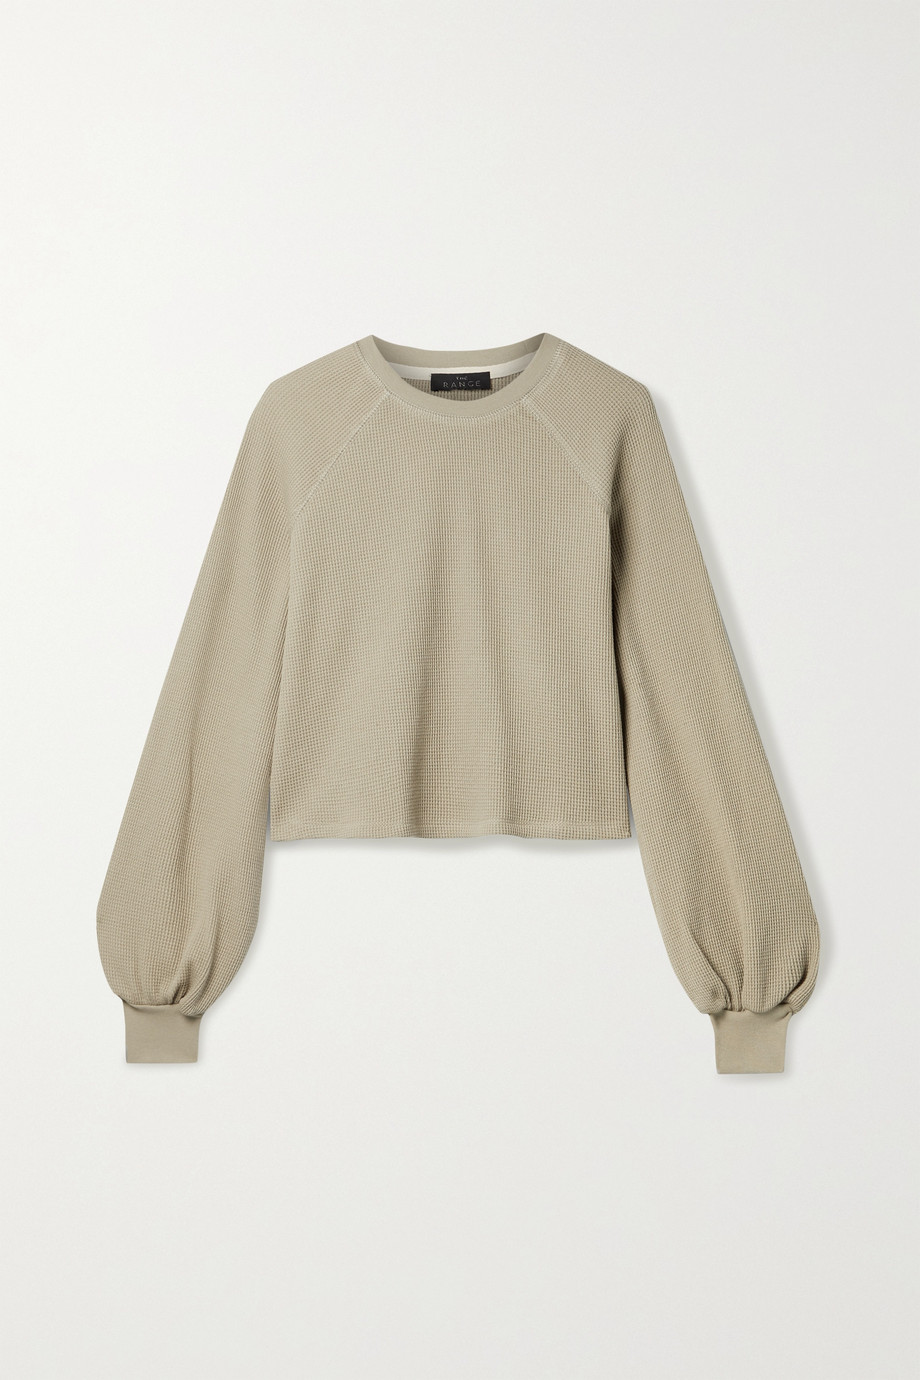 The Range Stark cropped waffle-knit stretch-cotton top